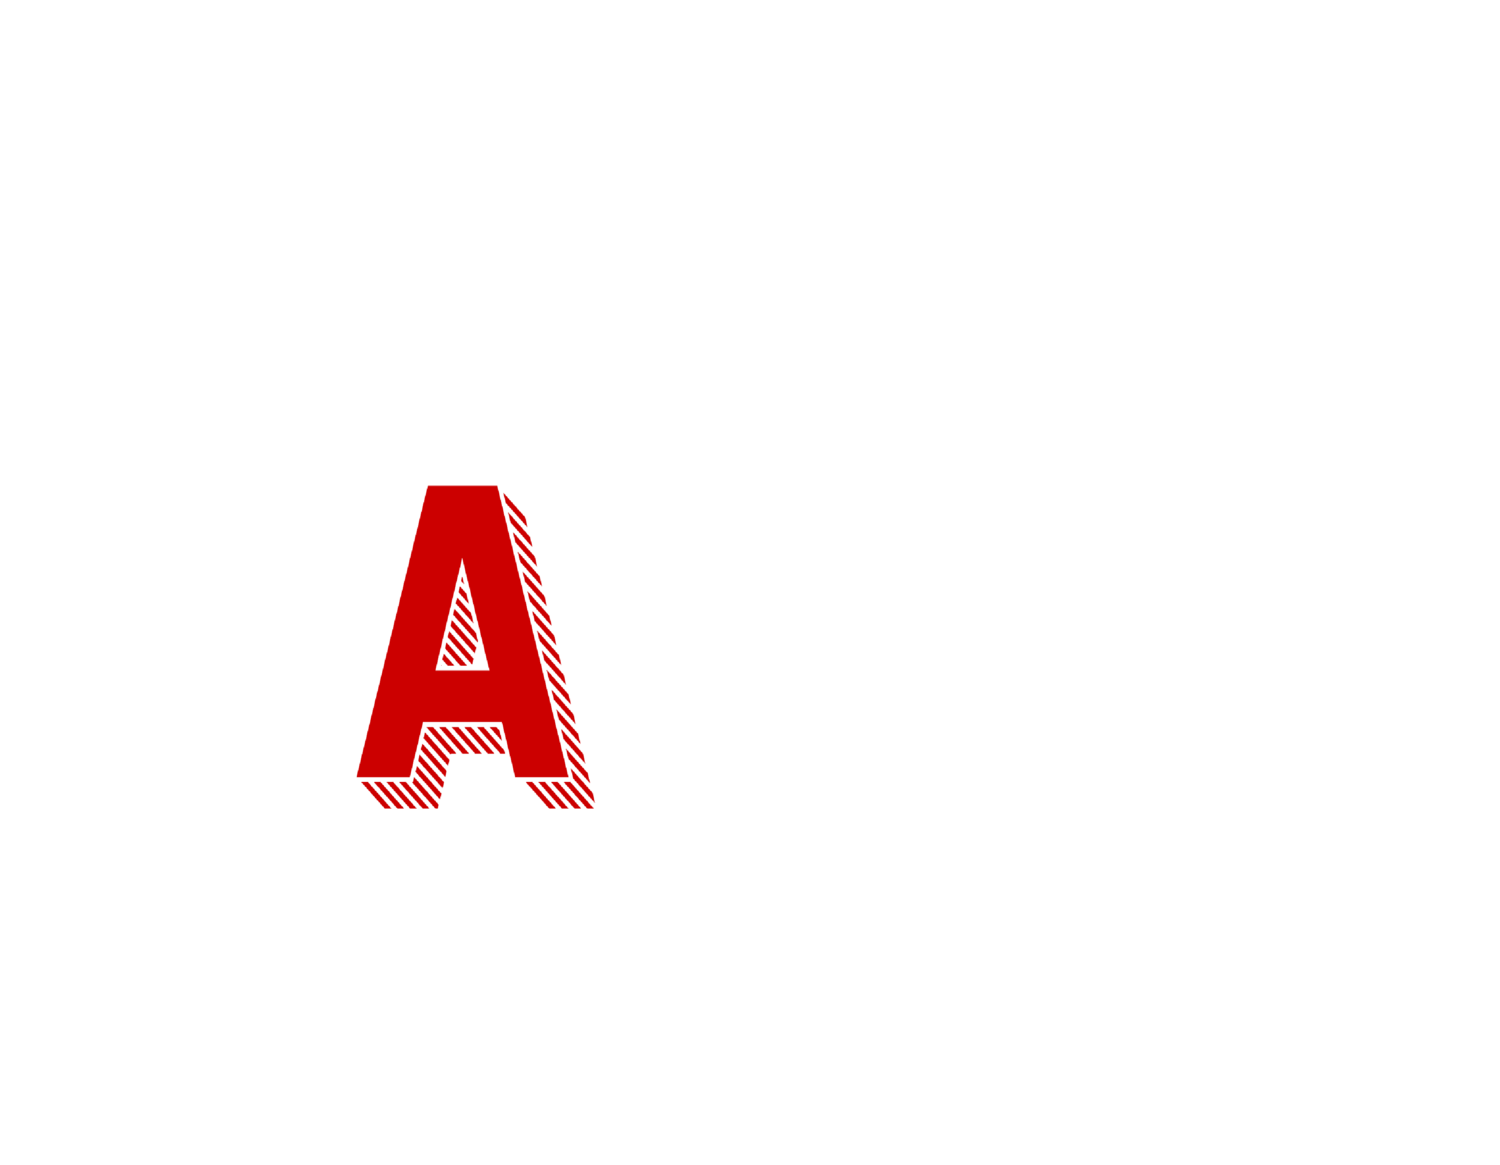 The Downtown Allentown Market